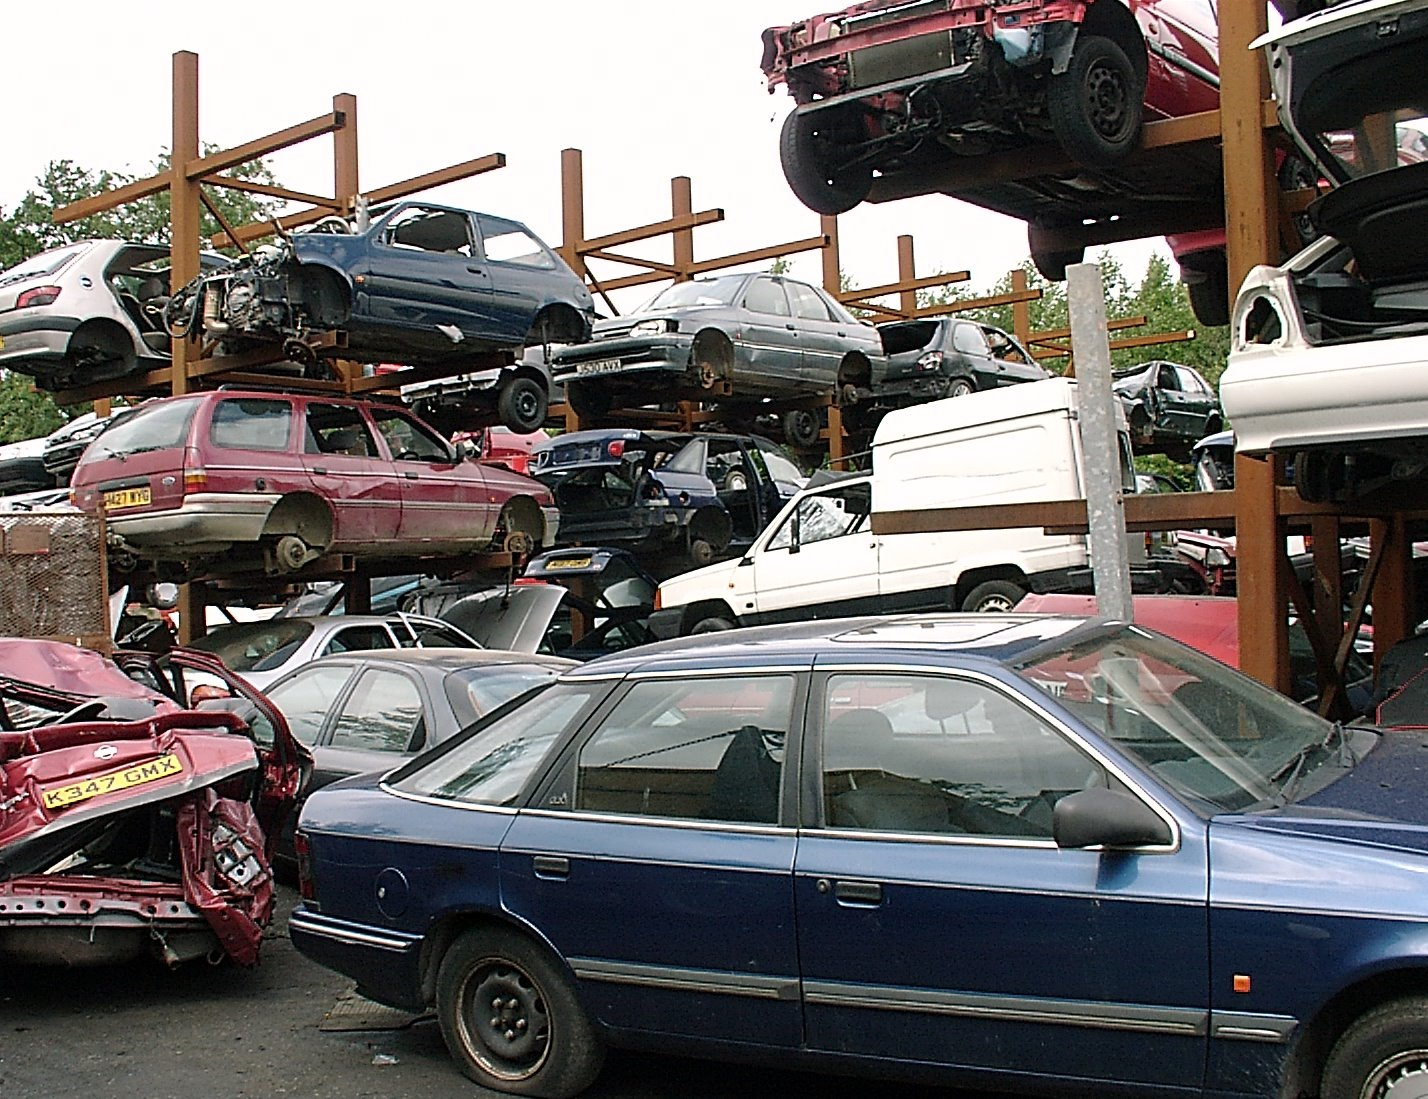 Fantastic Local Car Scrappers Contemporary - Classic Cars Ideas ...